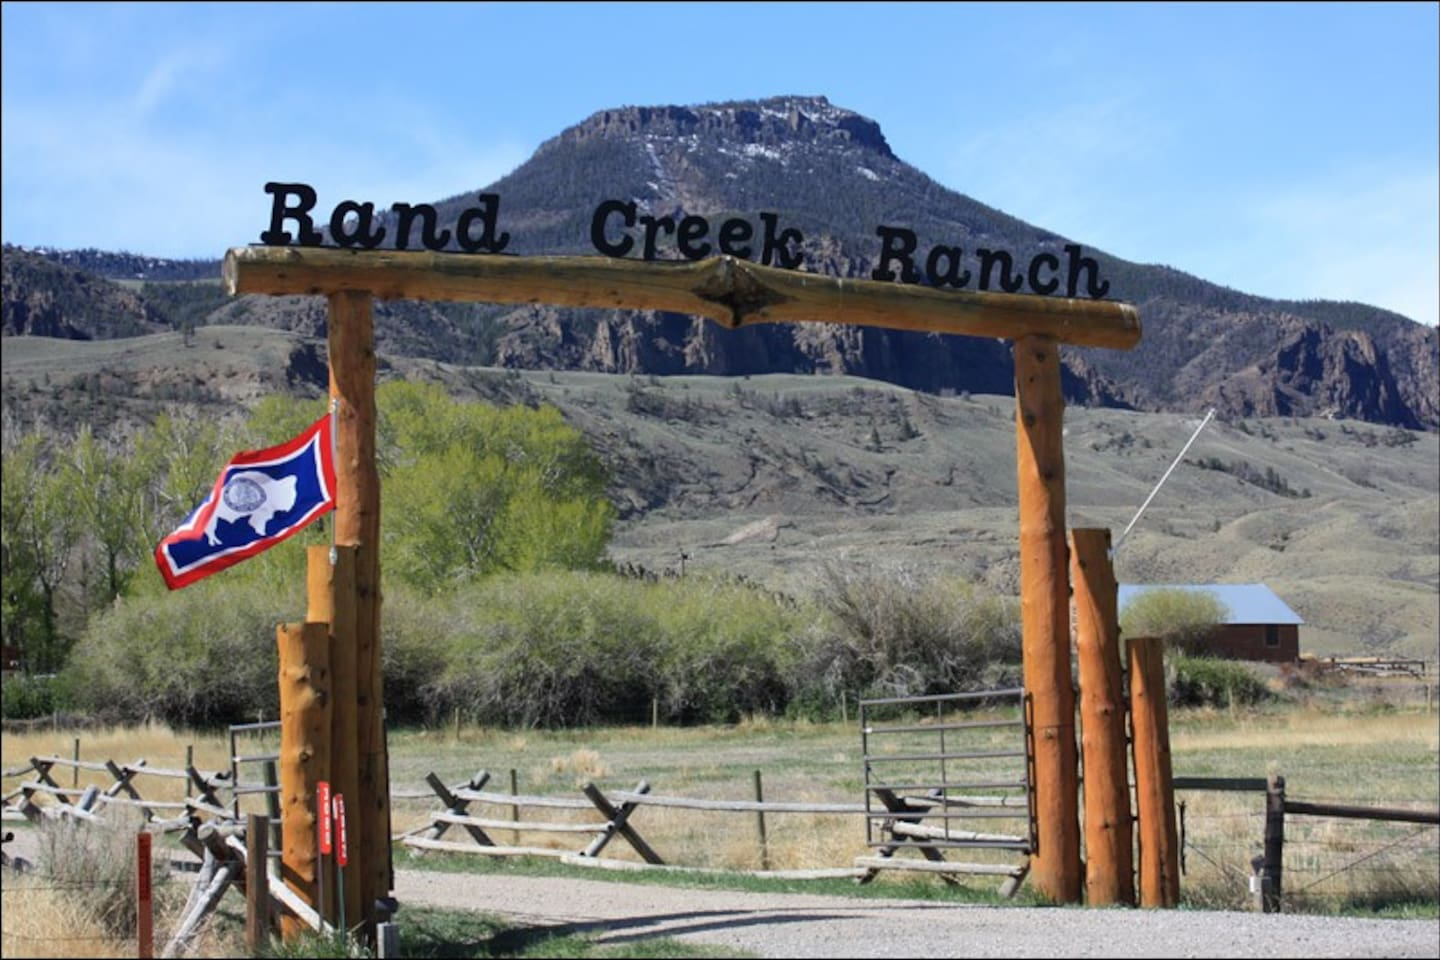 Gate way to the ranch.